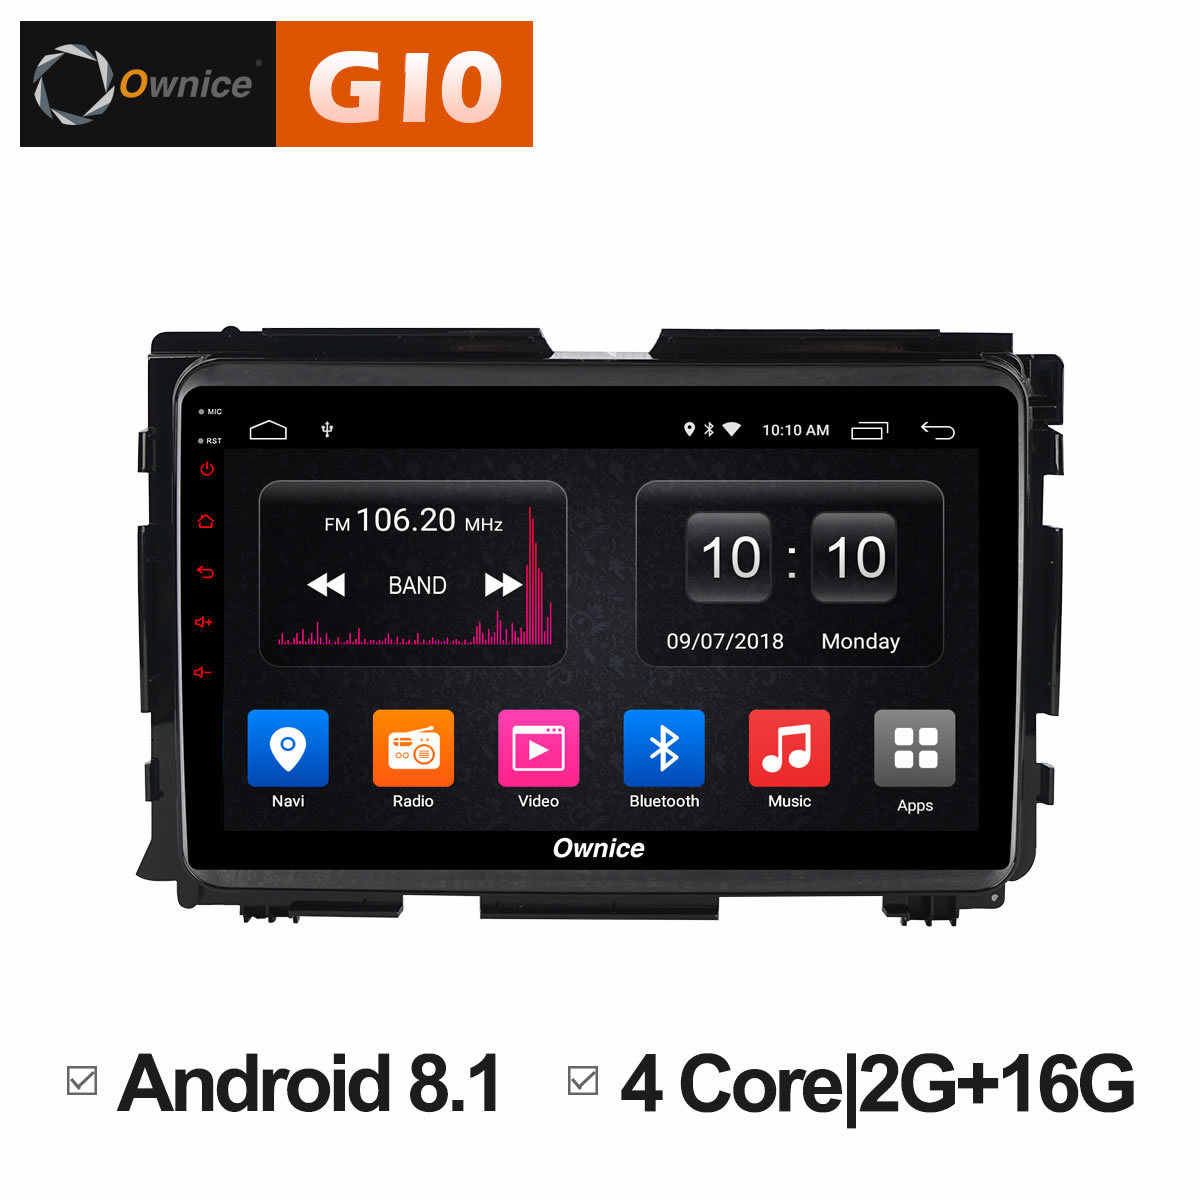 Ownice C500 + G10 Auto Radio Multimedia OEM frame auto PC android 8.1 octa core Video Speler Navigatie GPS Voor XR-V 2015 2016 2017